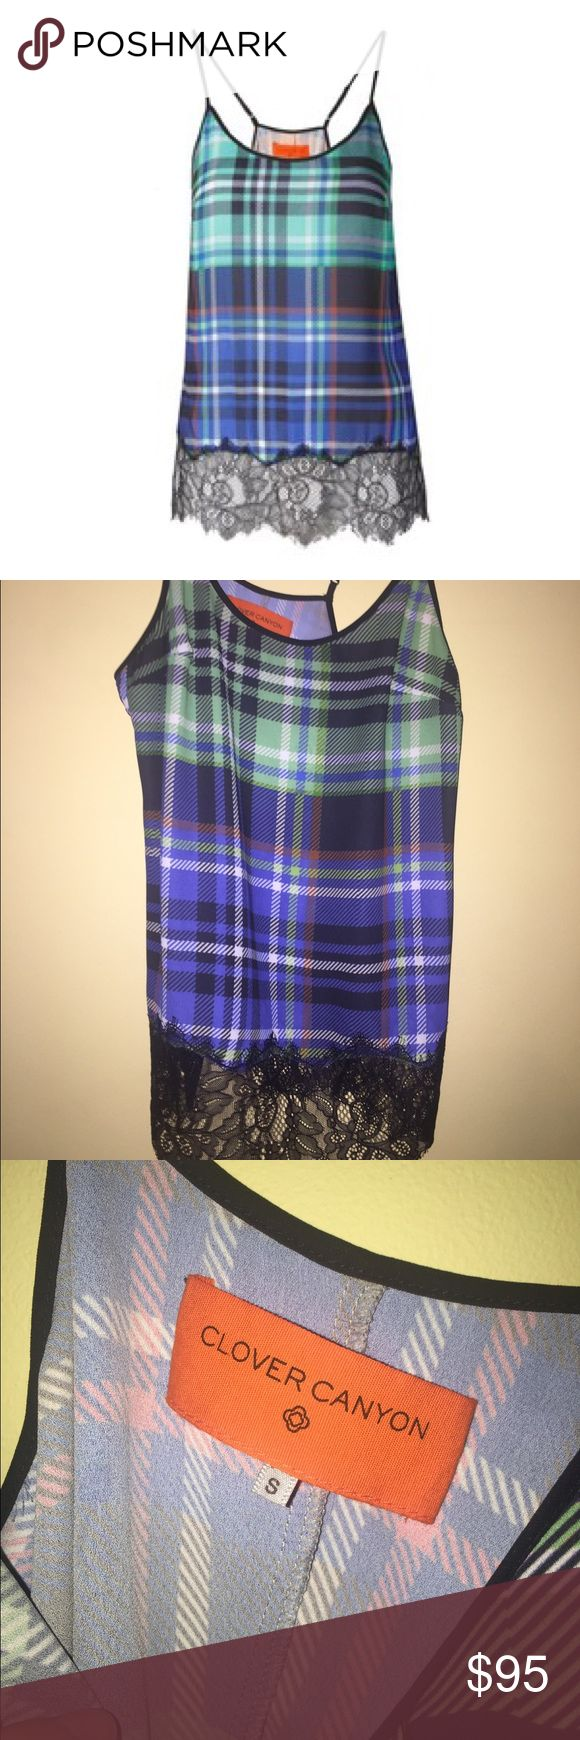 Clover canyon plaid lace top Worn once Clover Canyon Tops Tank Tops